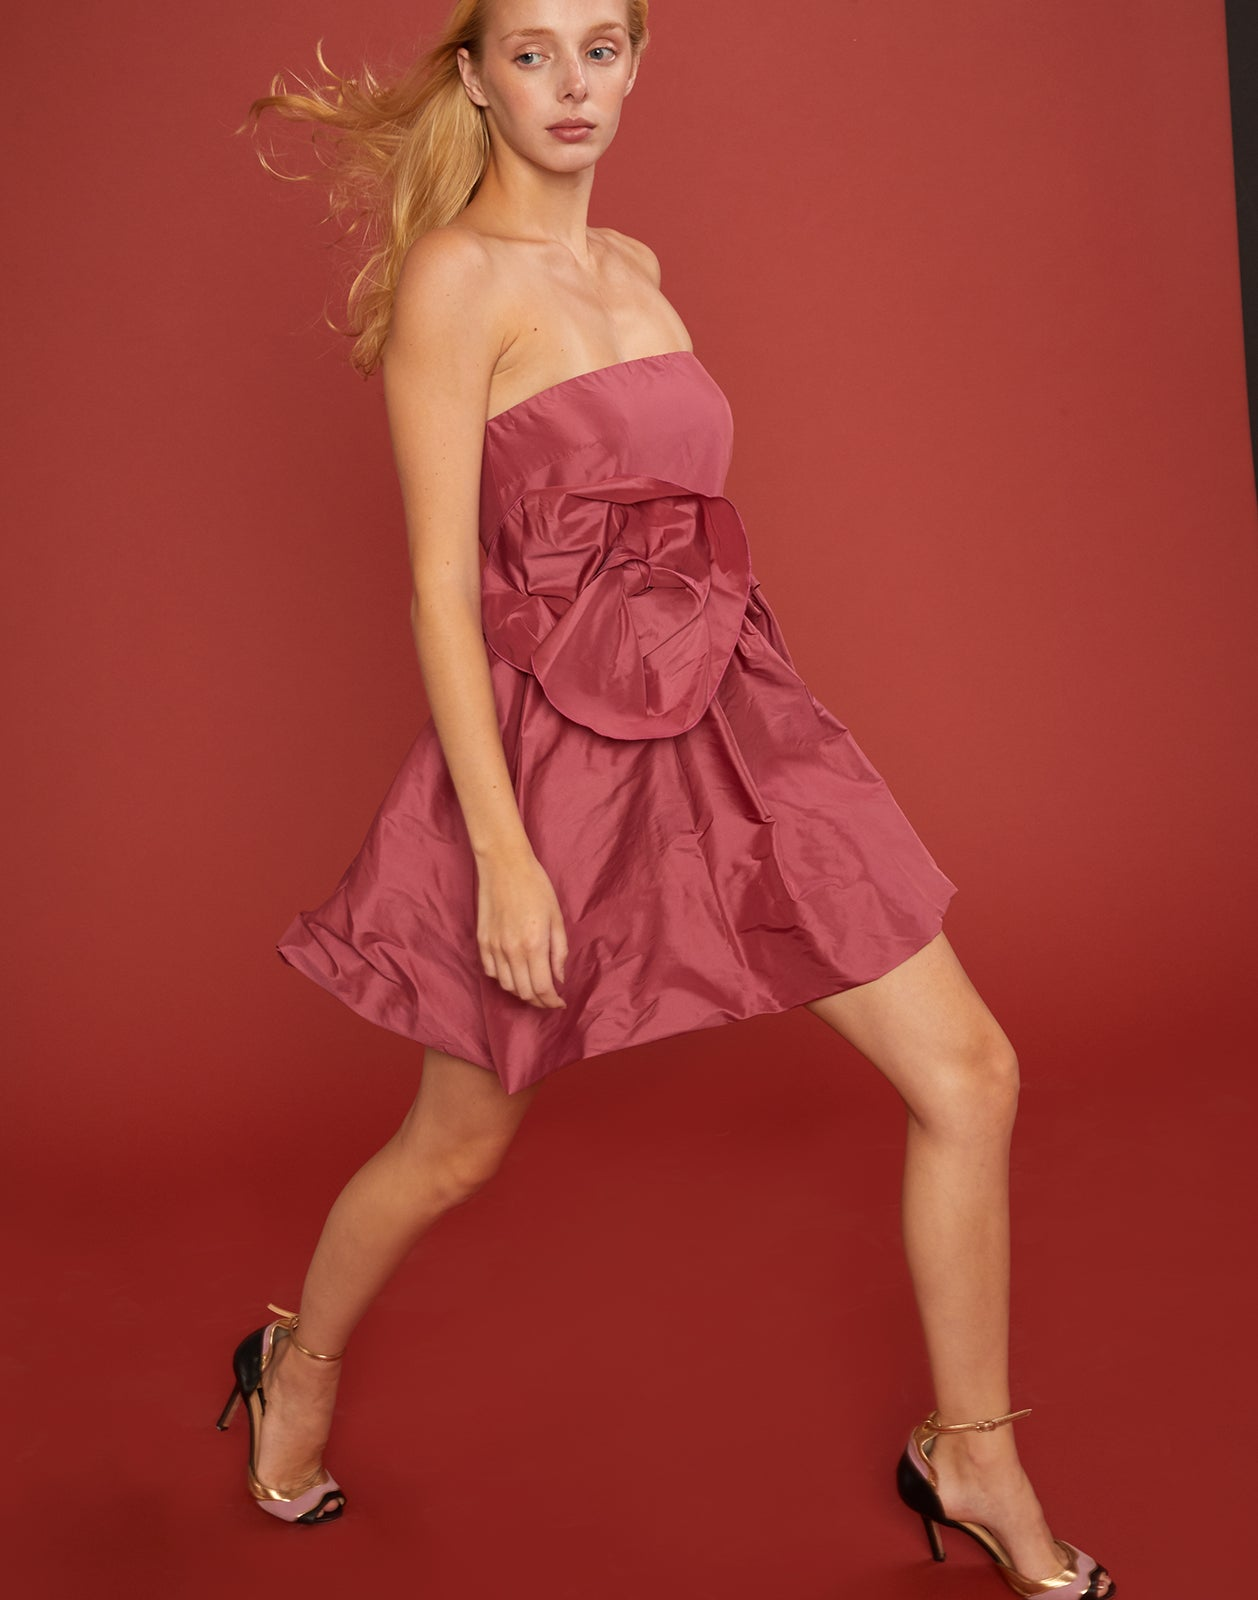 Diagonal walking shot of Lulu Dress with oversized bow detail at waist